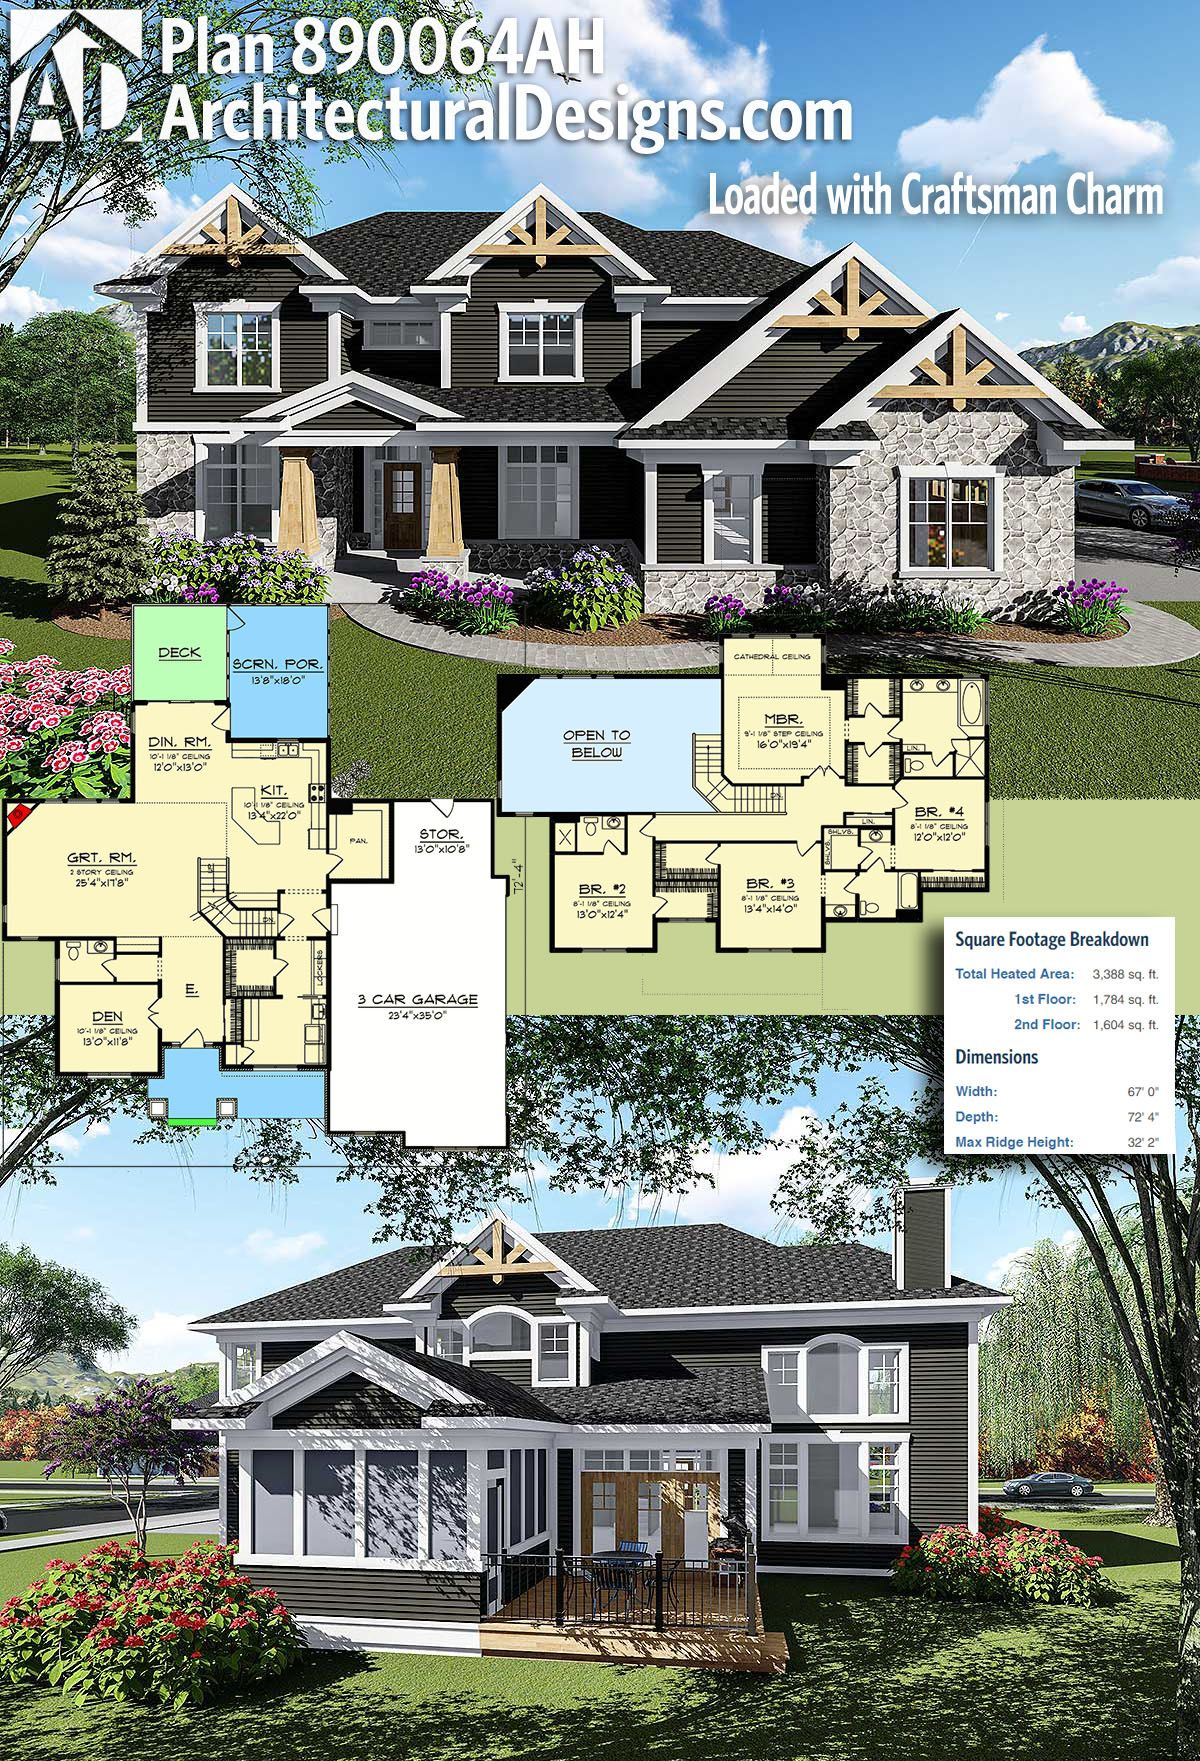 Plan 890064ah Loaded With Craftsman Charm Dream House Plans Craftsman House Craftsman House Plan